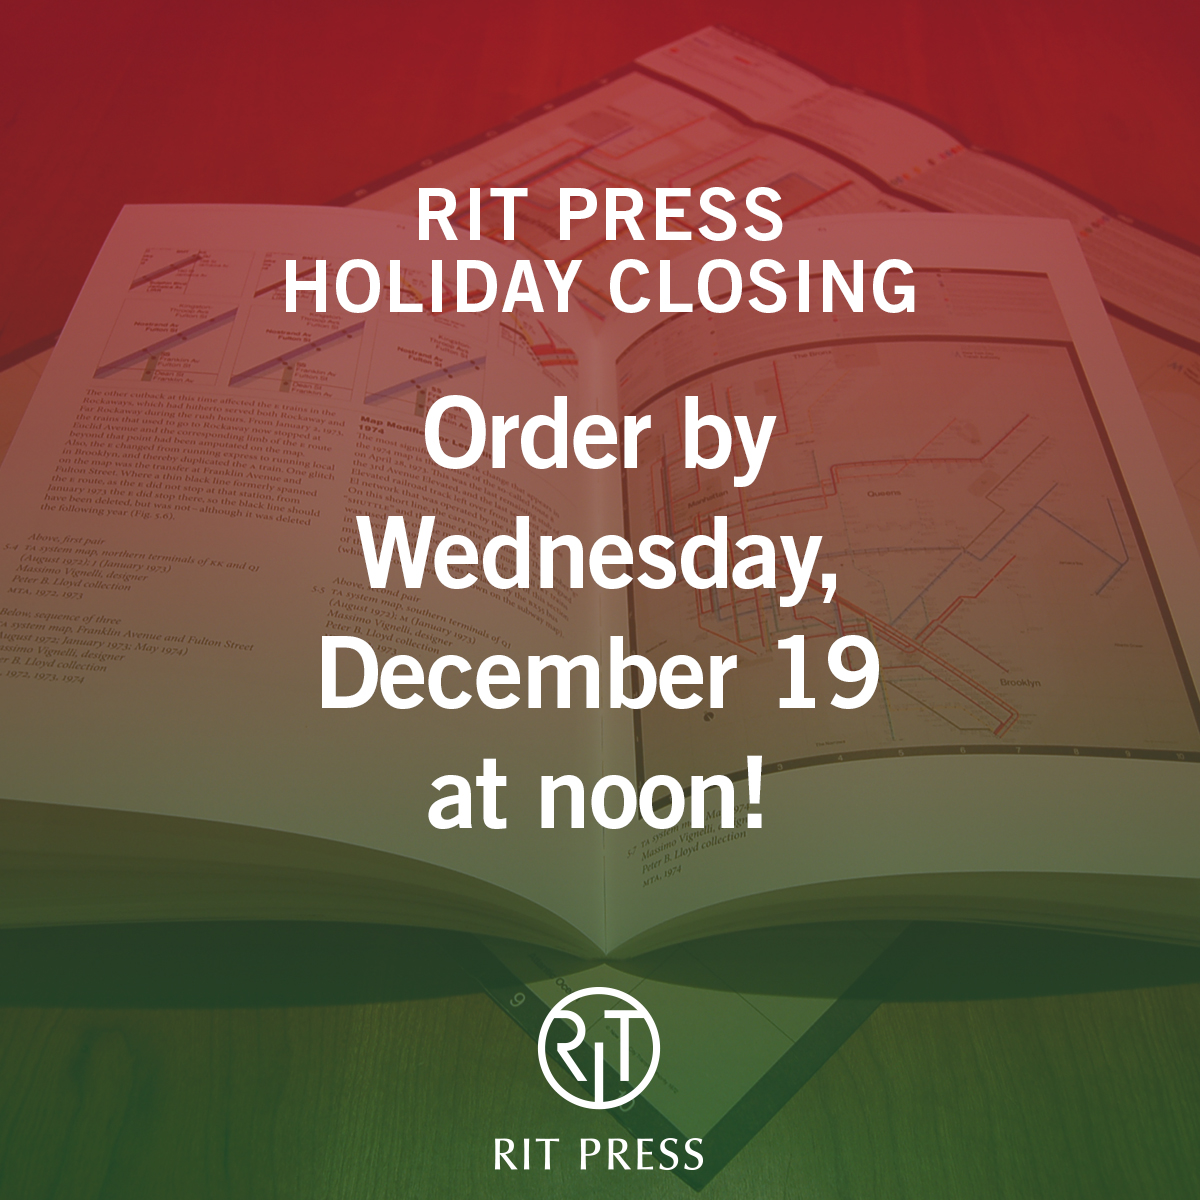 RIT Press Holiday Closing